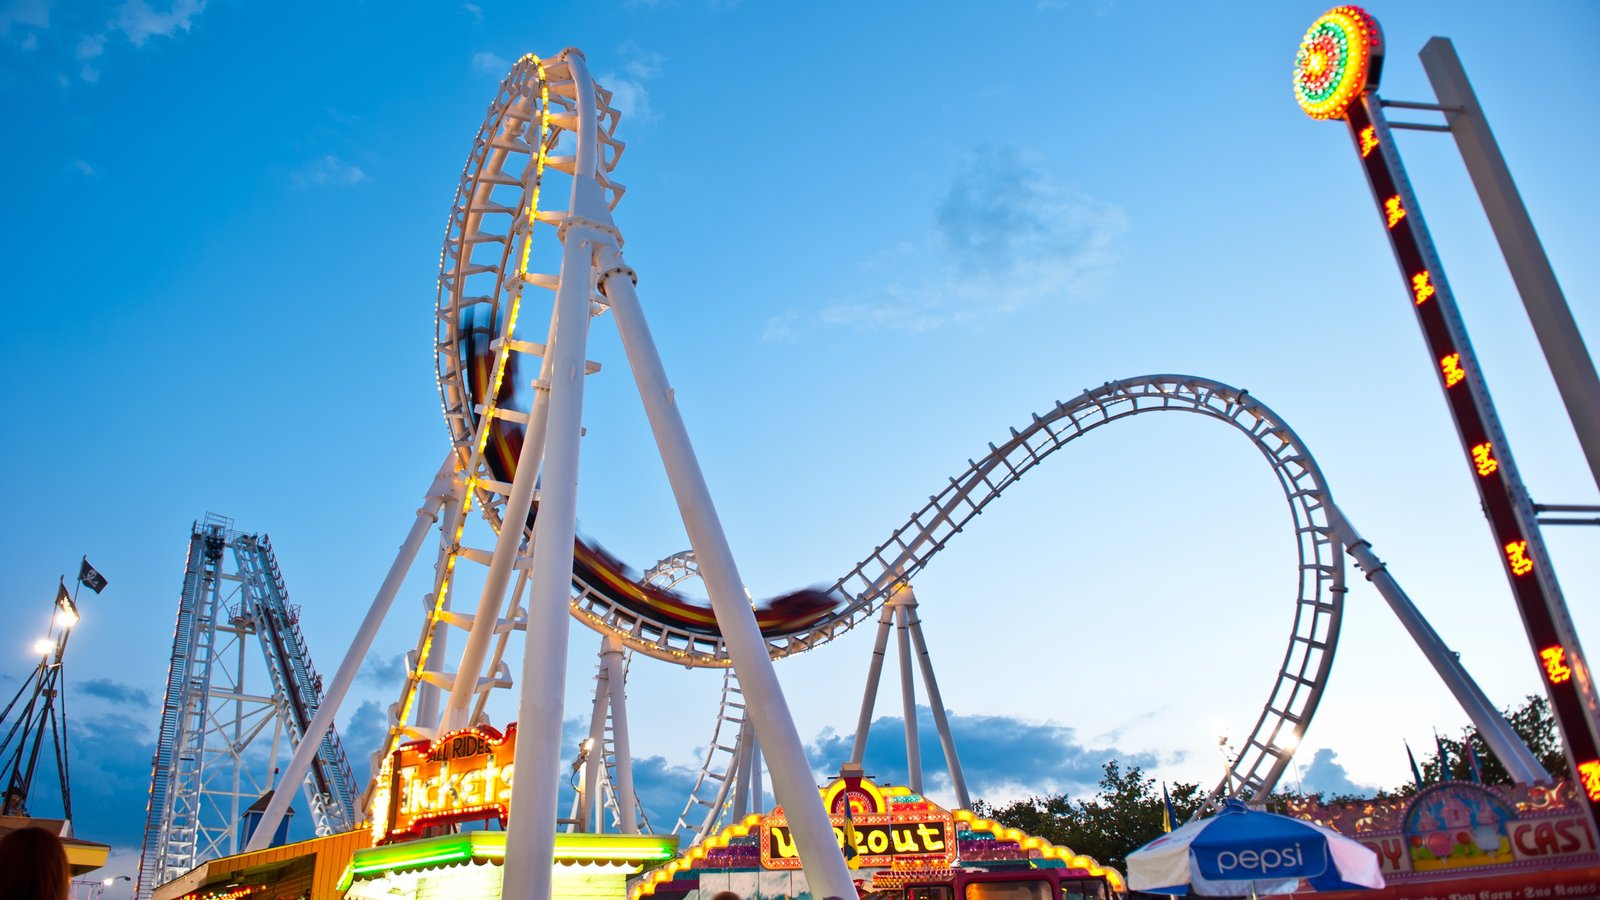 Ocean City which includes rides